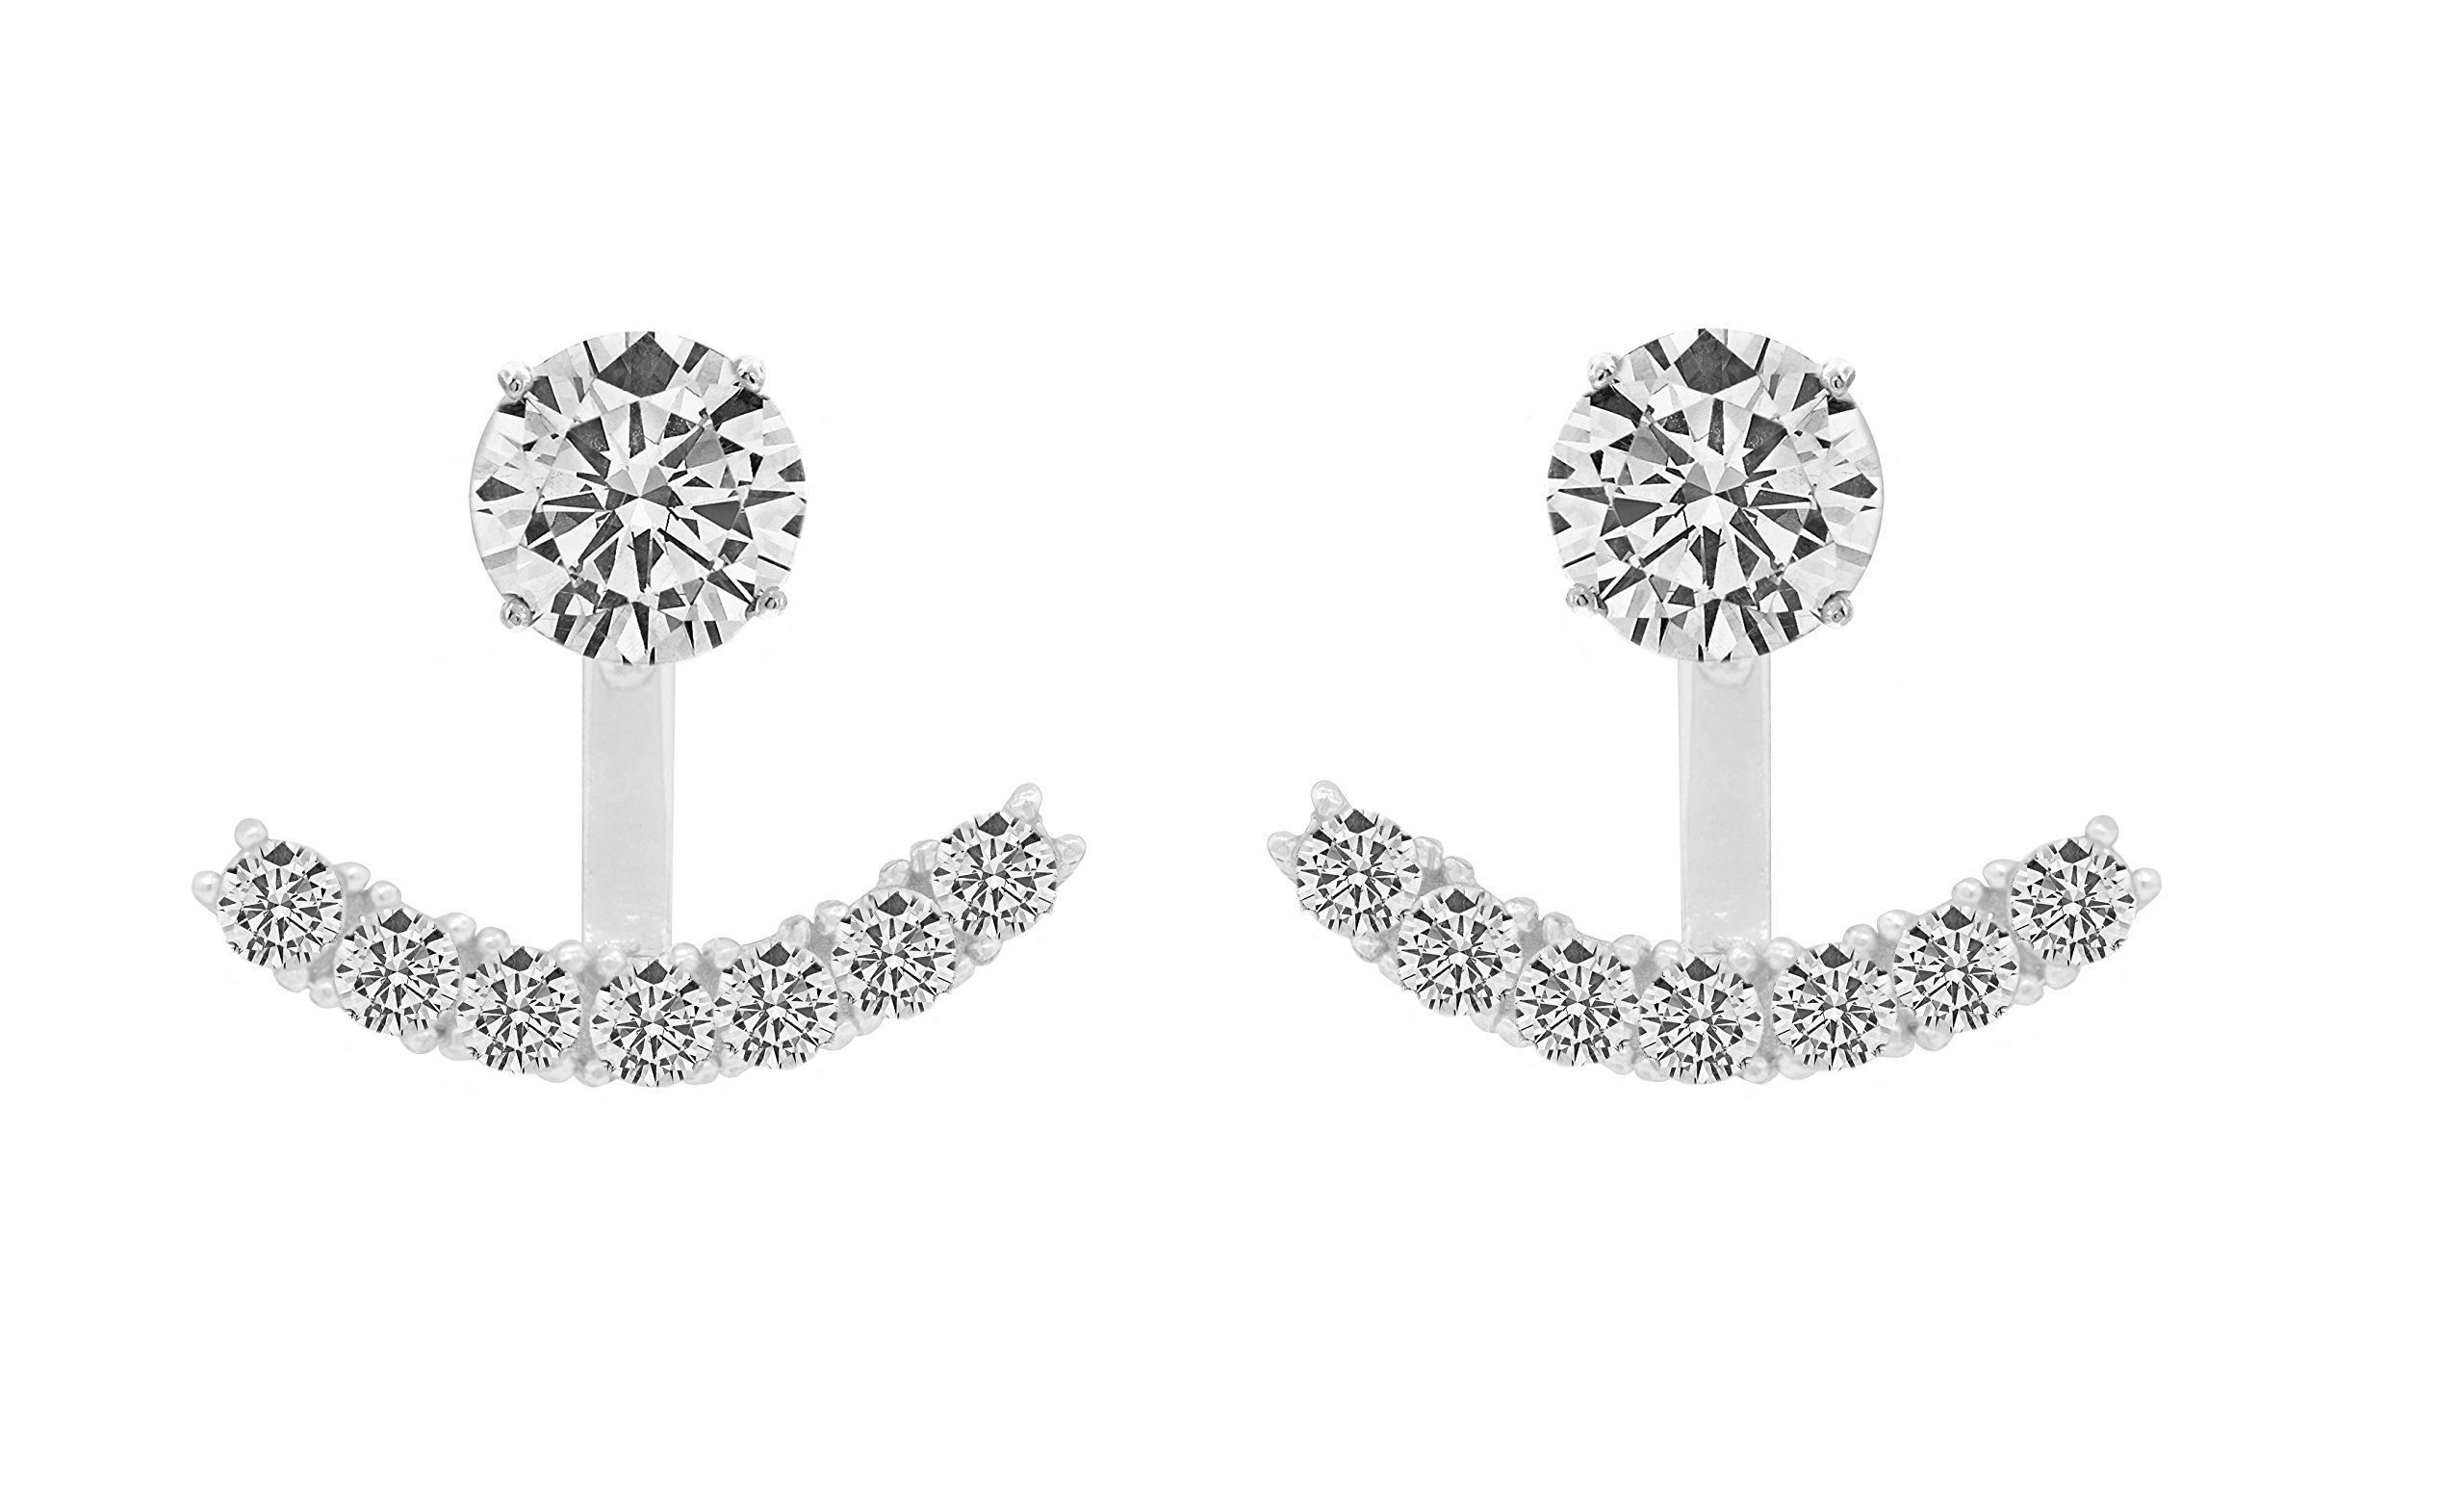 Sterling Silver Front Back 2 in 1 Cubic Zirconia AAA Quality Stud and Ear Jacket Cuff Earrings Set (White)